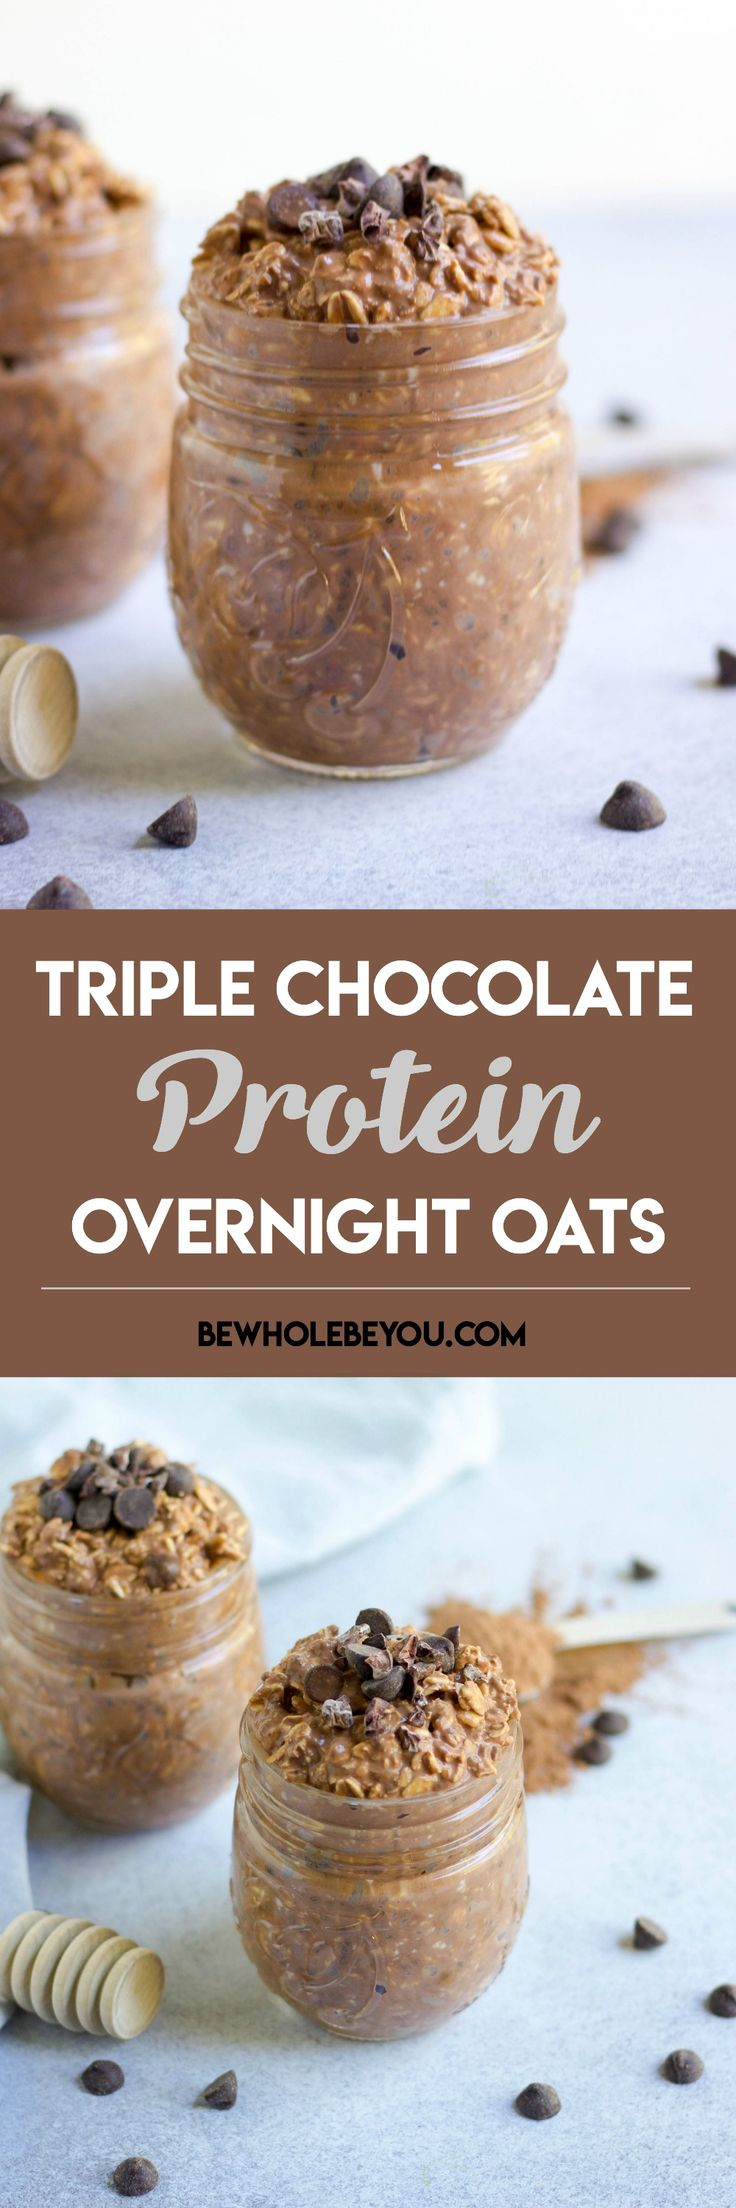 Triple Chocolate Overnight Oats. Overnight Oats just got even better with chocolate, chocolate and even more chocolate! Wholesome oats and chocolate for breakfast! bewholebeyou.com